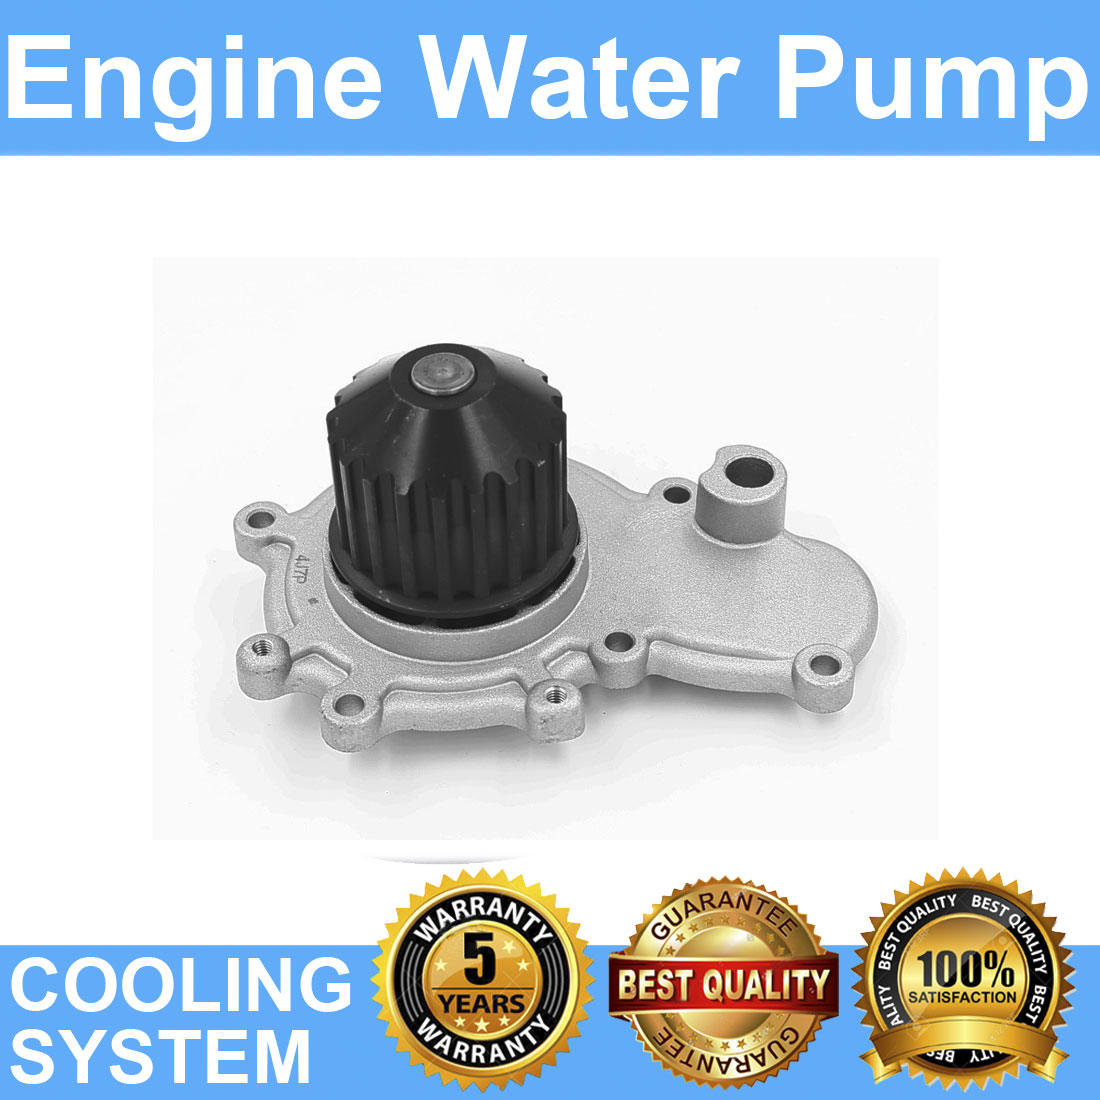 Engine Water Pump For 1995-1999 Mitsubishi Eclipse L4 2.0L 122cid by Bargain Outlet